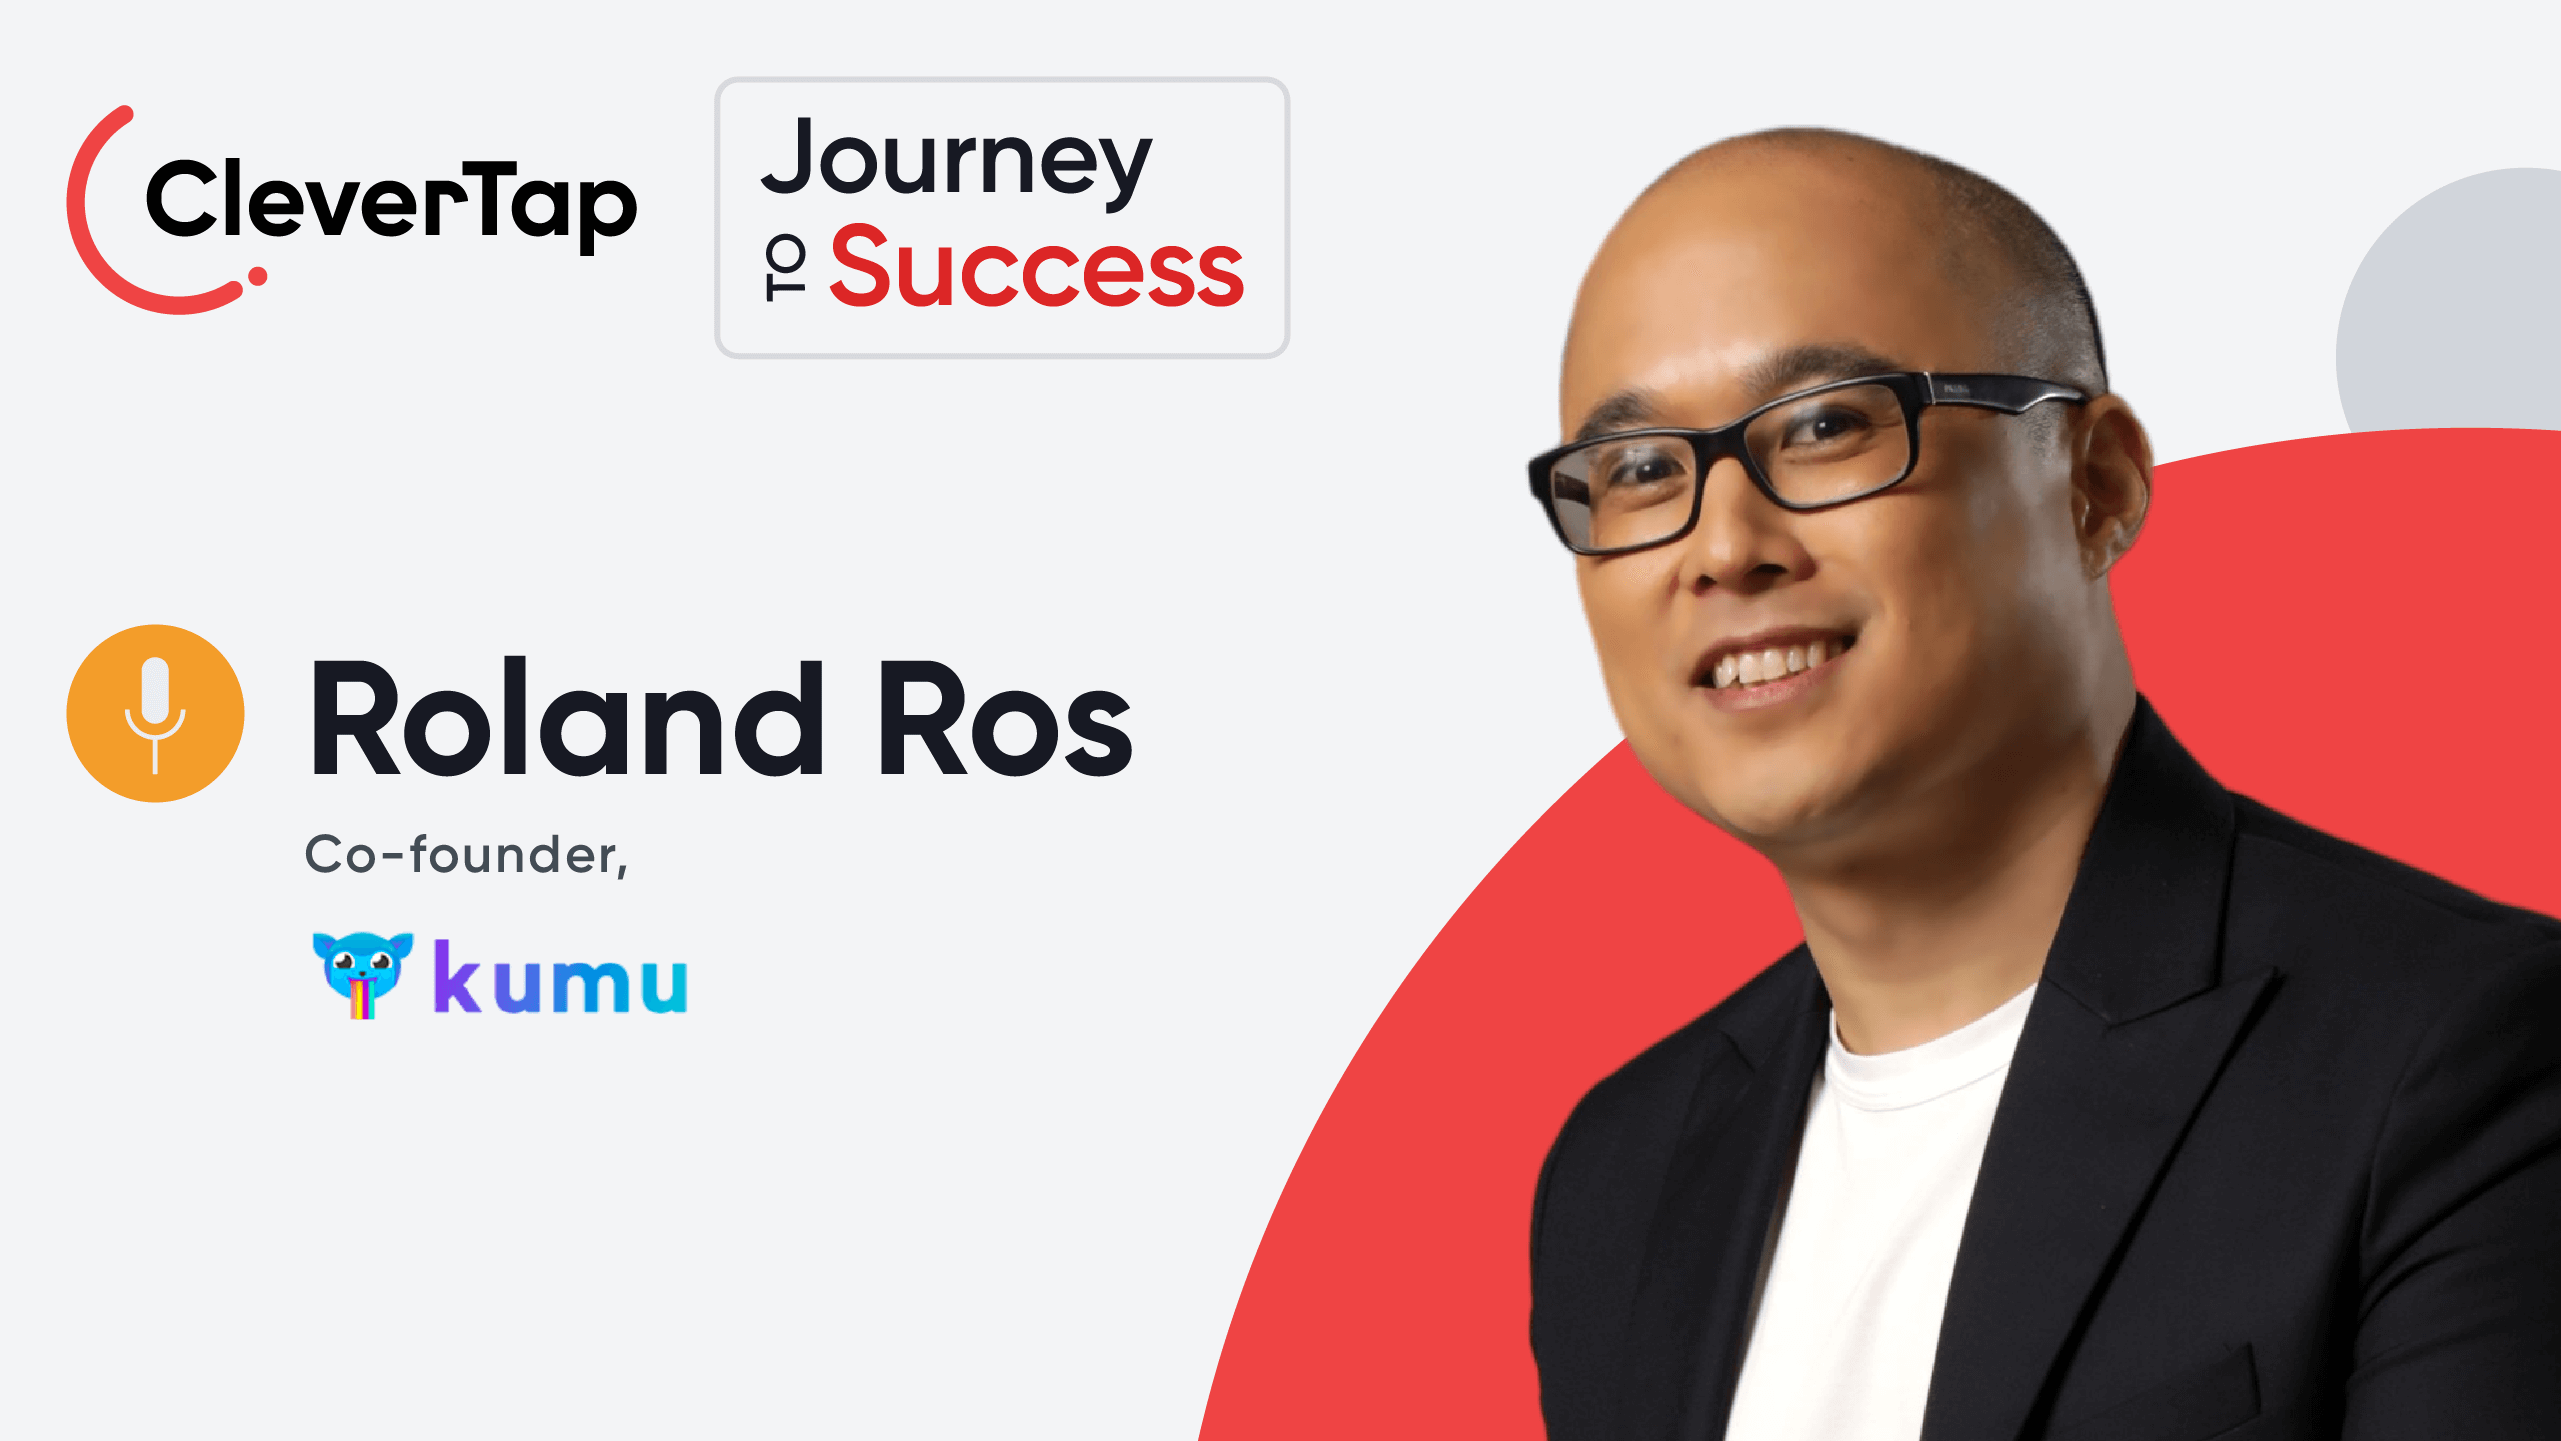 Building Journeys within CleverTap